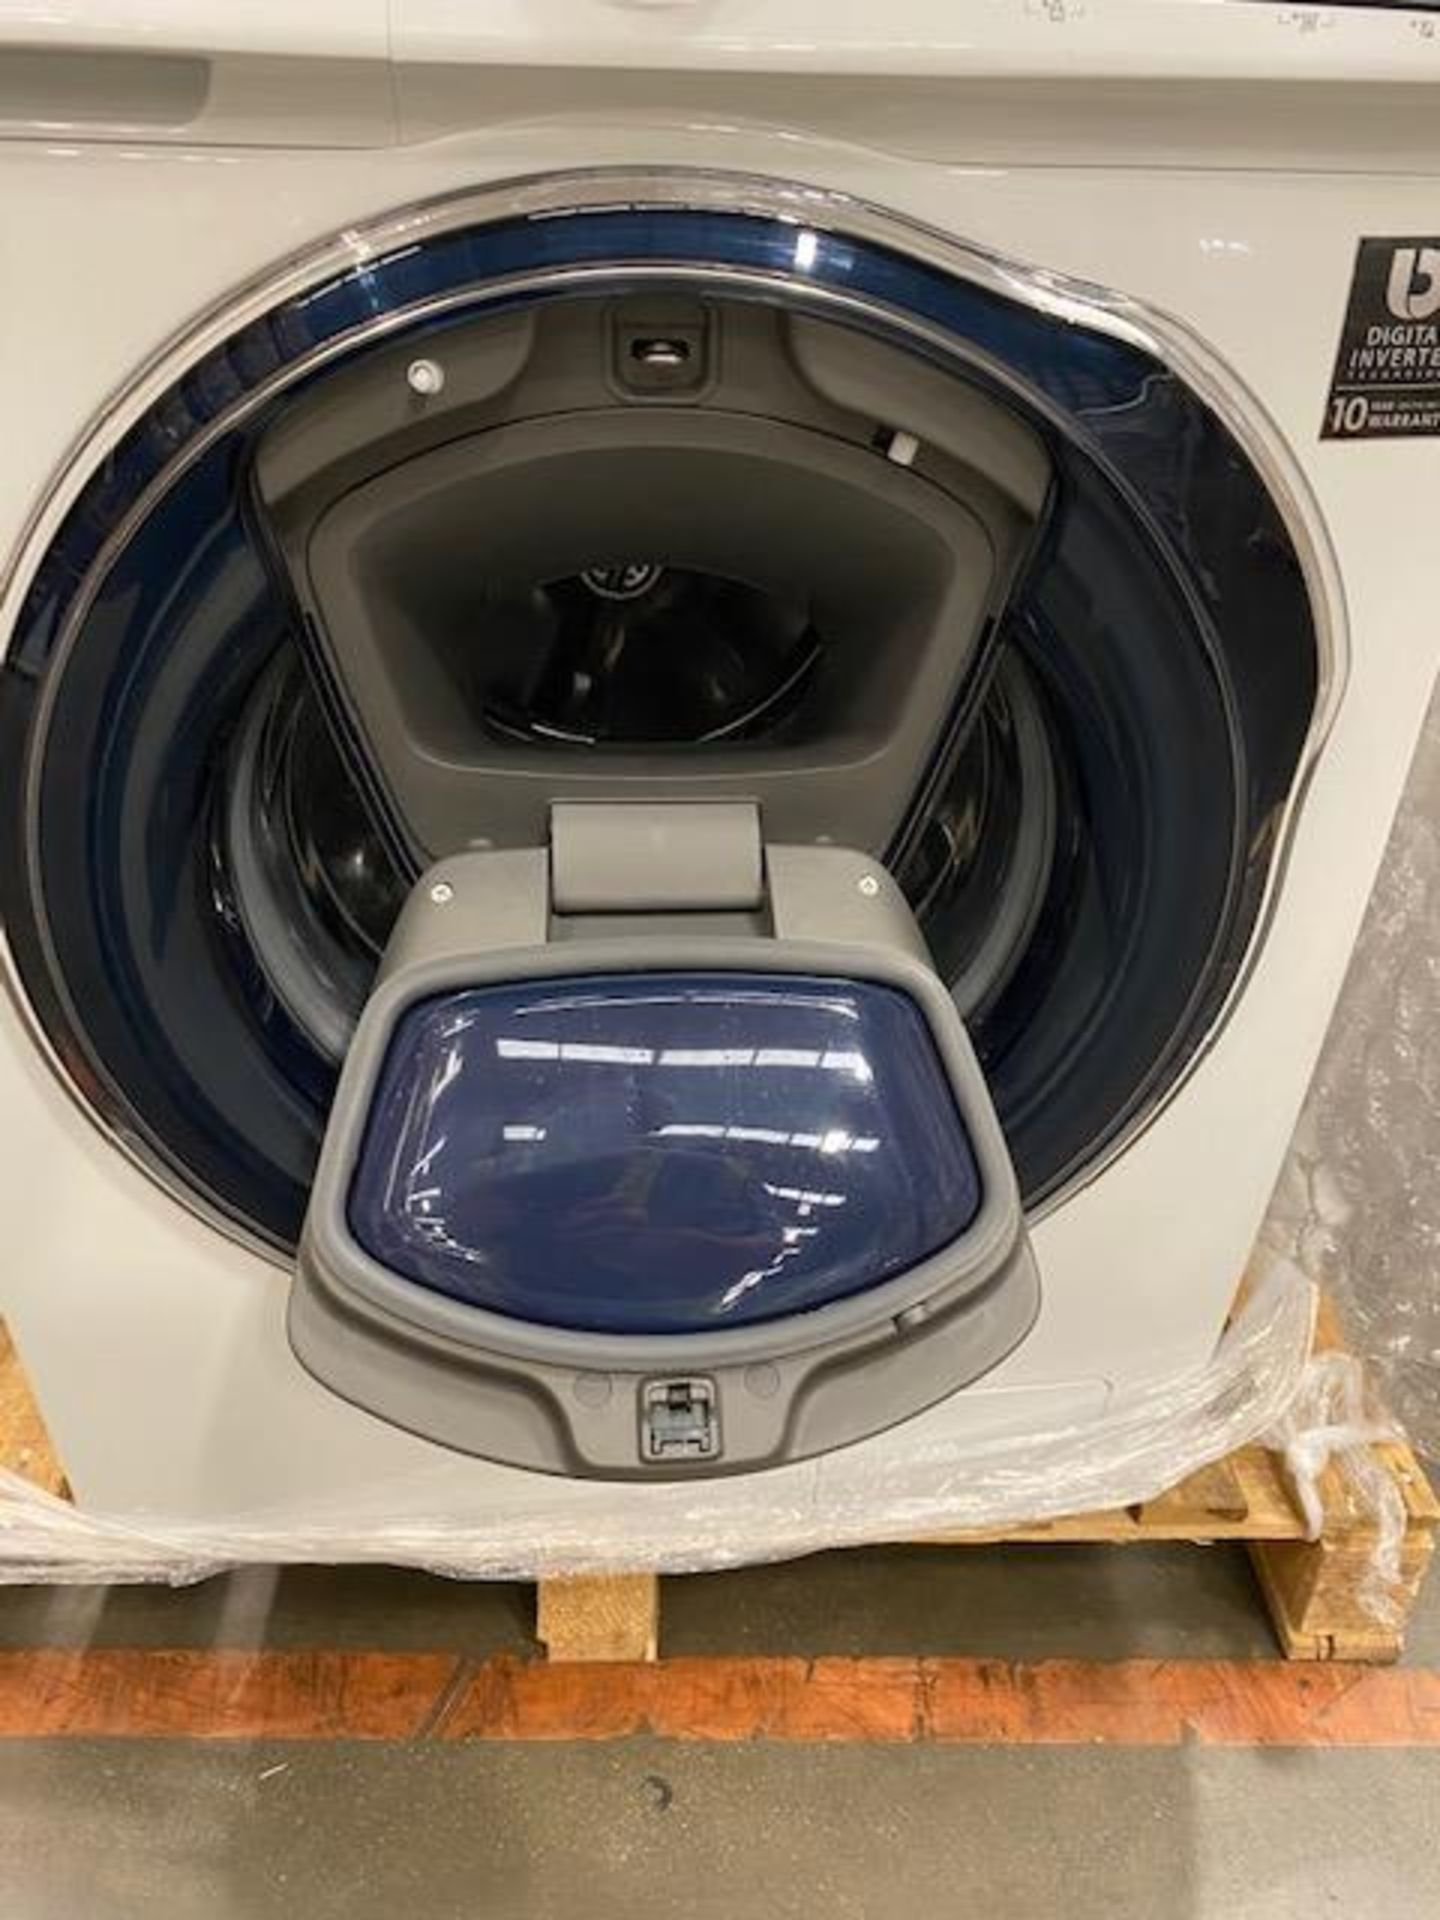 Pallet of 2 Samsung Premium Washing machines. Latest selling price £1,229.97* - Image 5 of 8